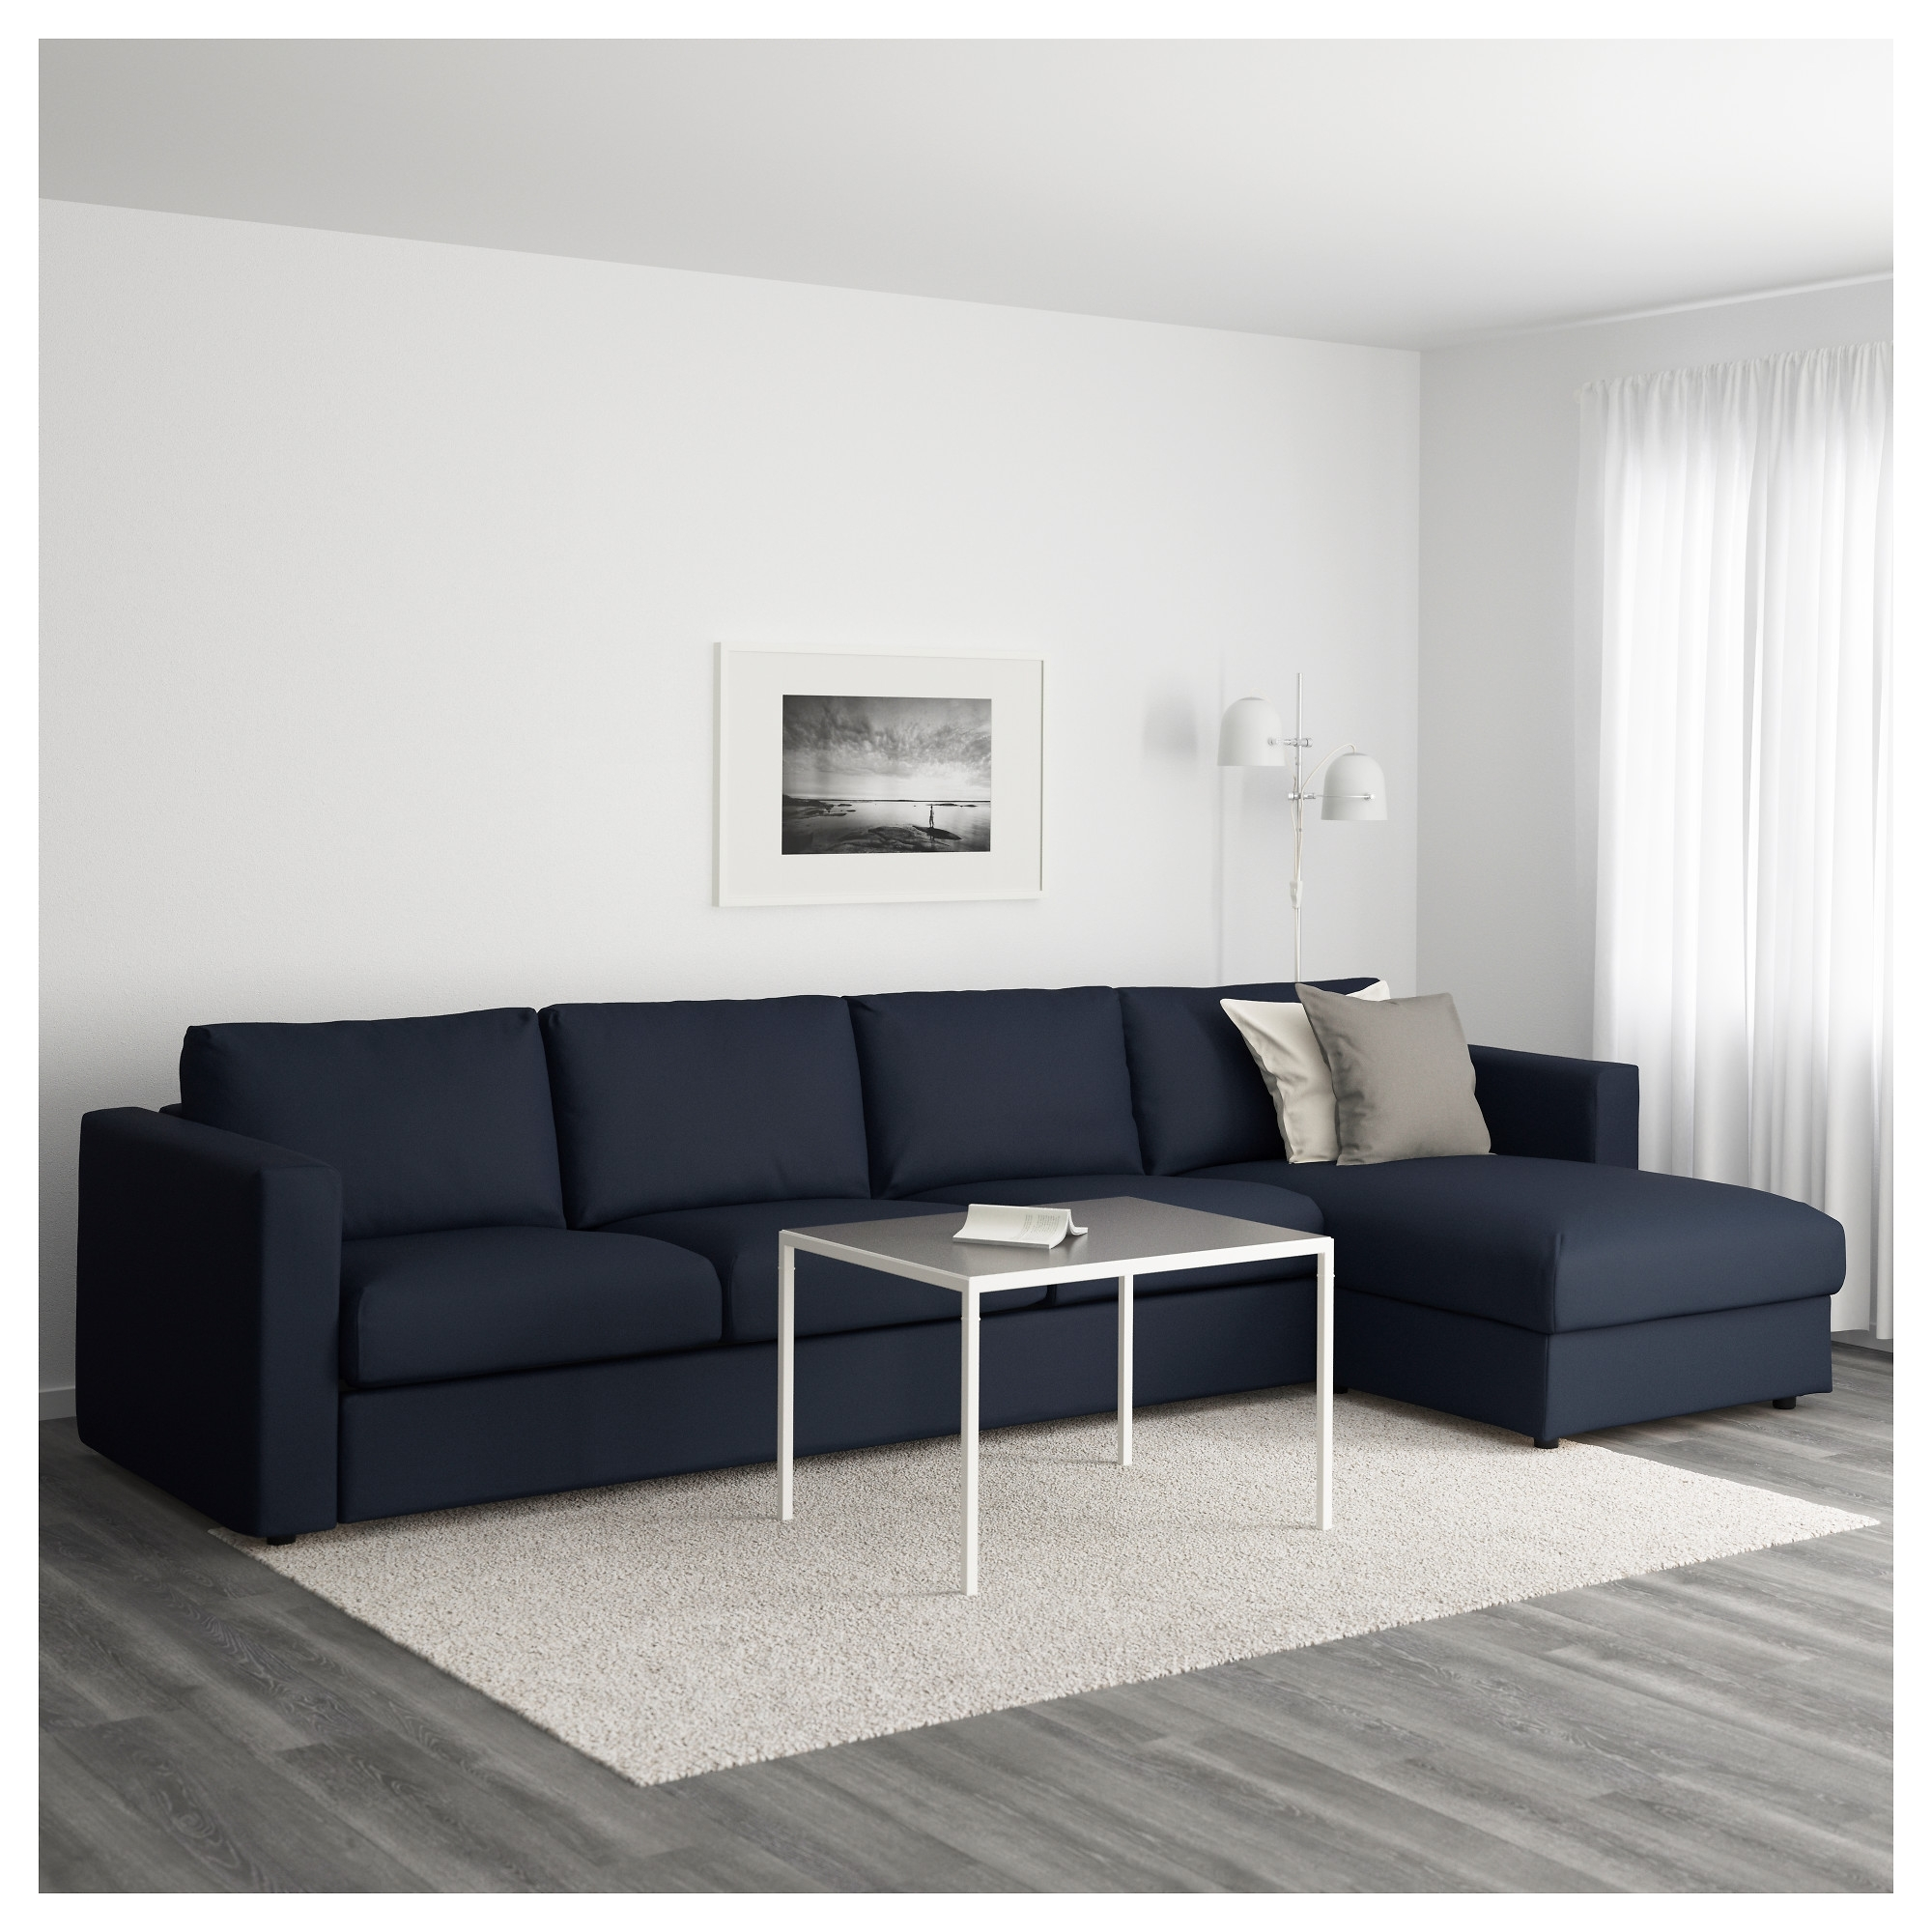 Vimle 4 Seat Sofa With Chaise Longue/gräsbo Black Blue – Ikea Within Popular 4 Seat Sofas (View 4 of 15)